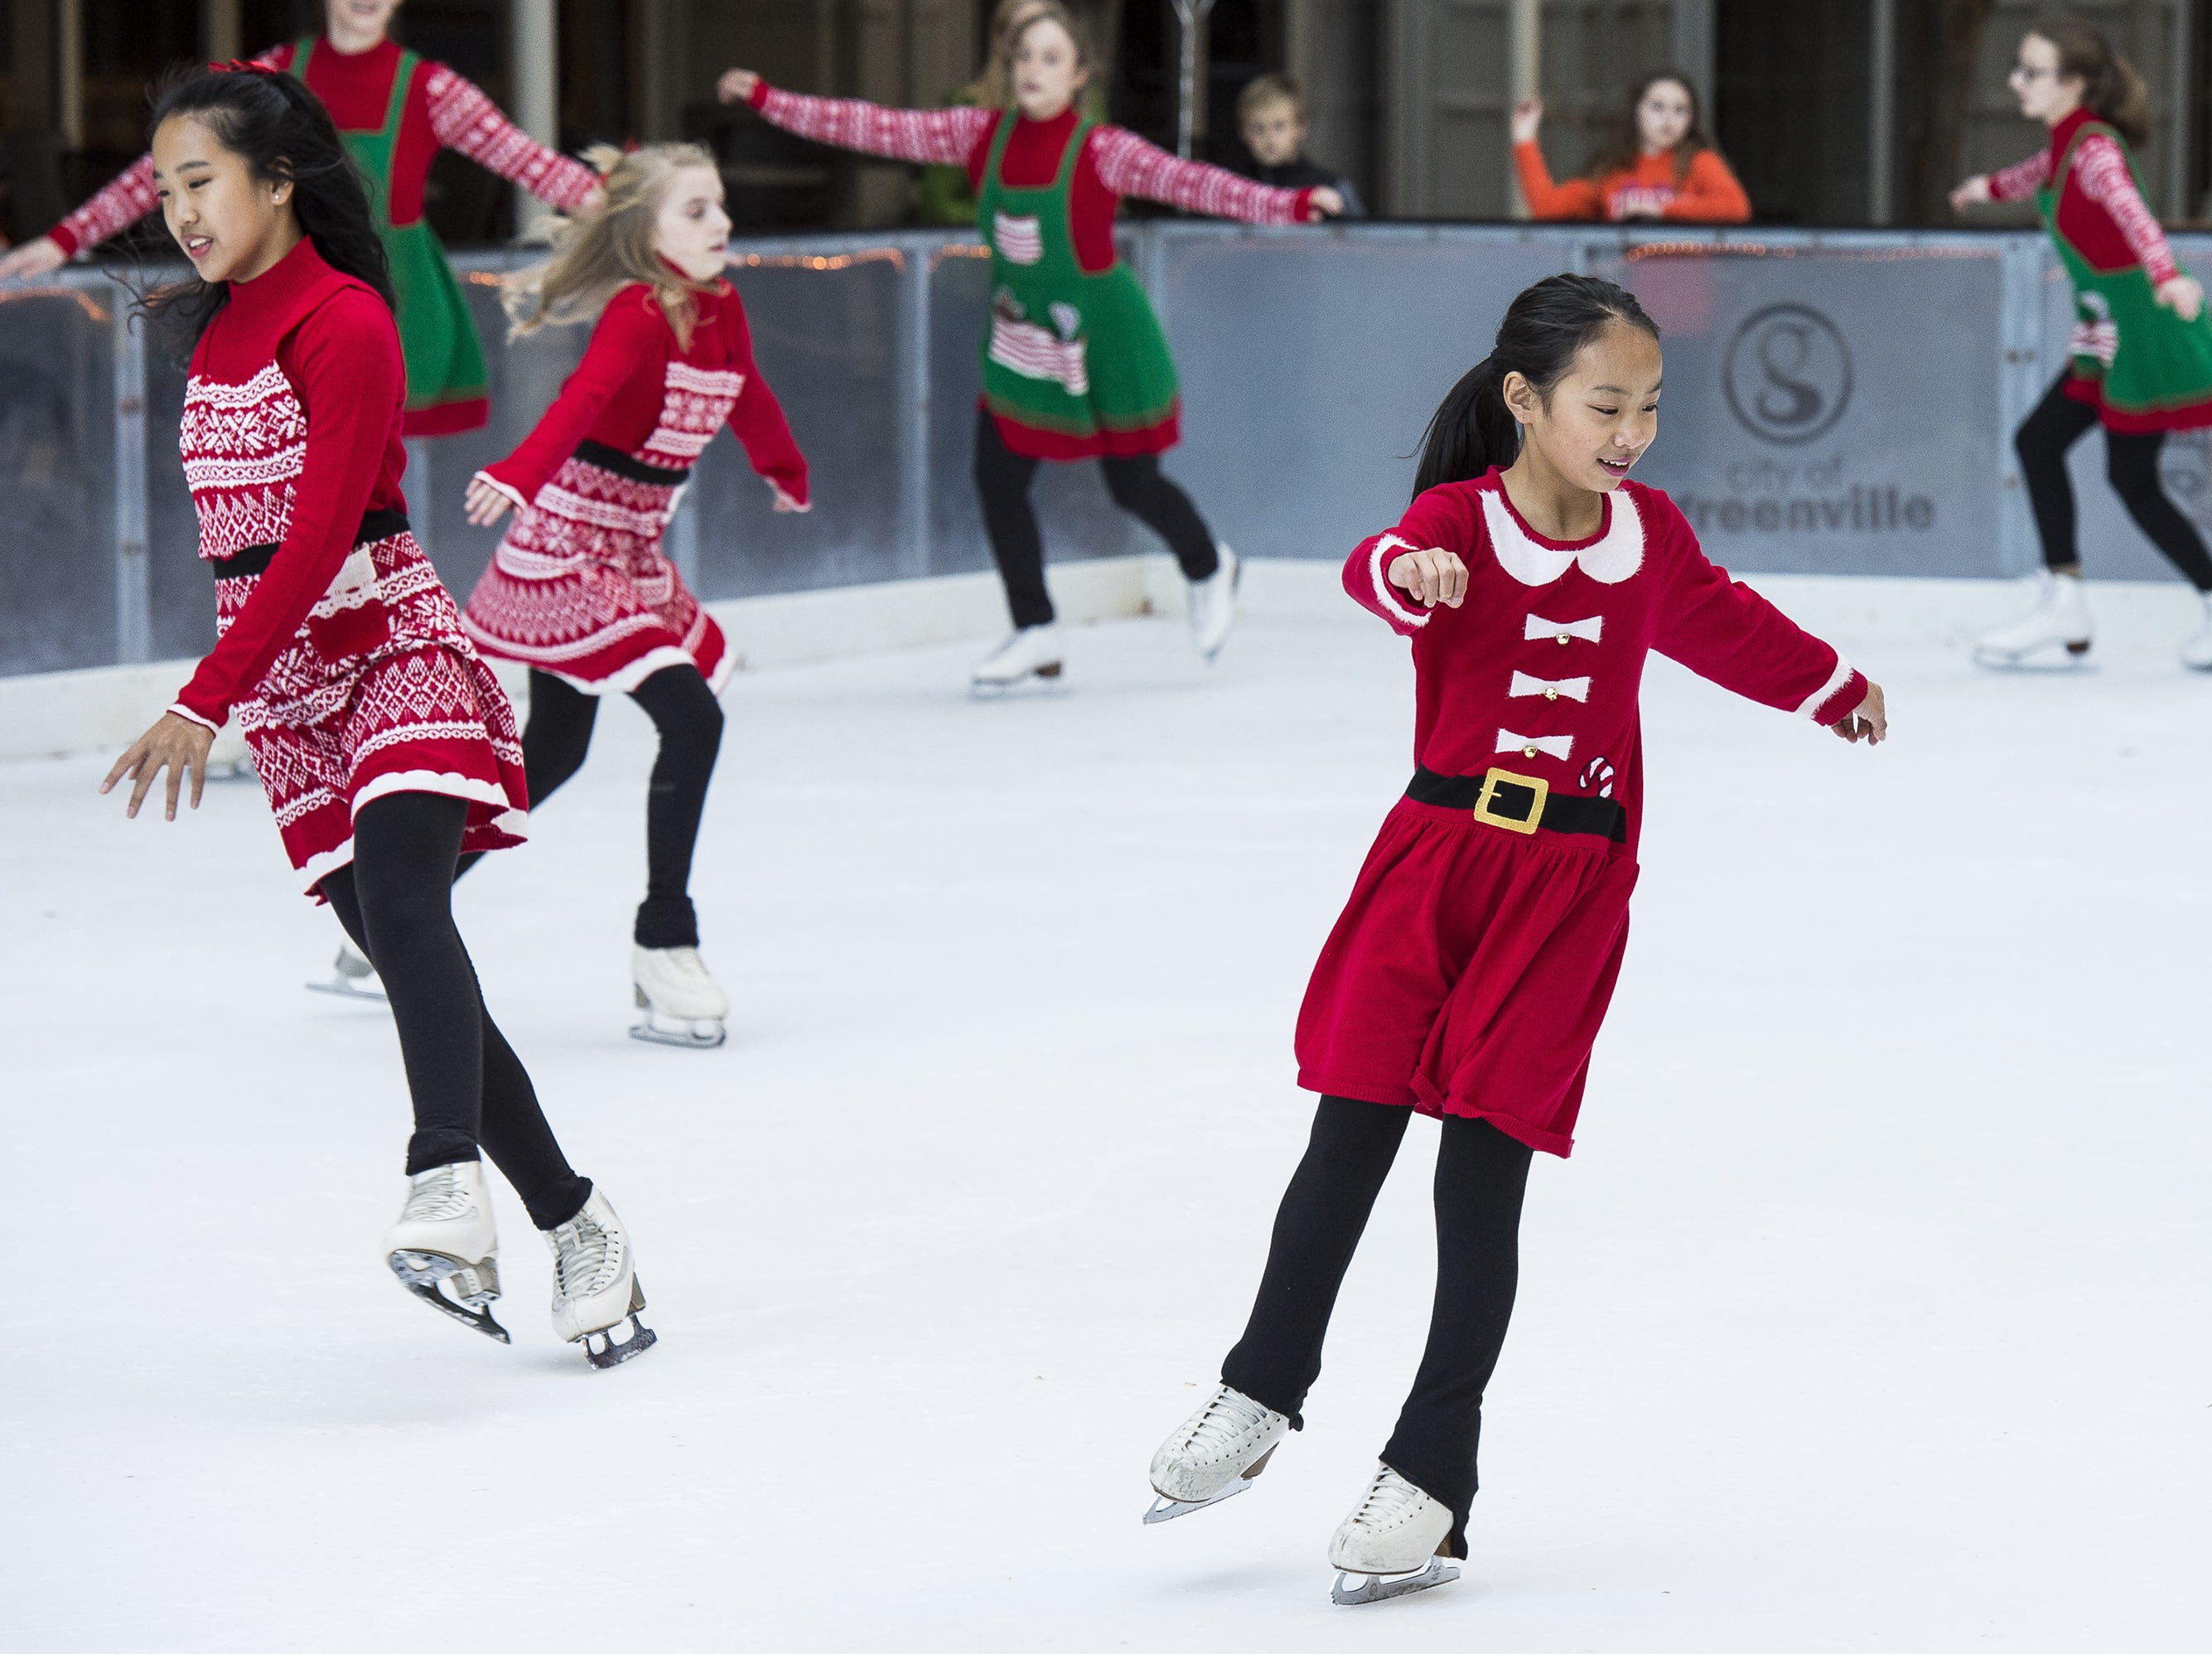 Sabrina Yang, right, and other members of the Greenville Figure Skating Club perform during the official opening of the United Community Bank Ice on Main ice skating rink in 2017. The rink opens again this weekend.